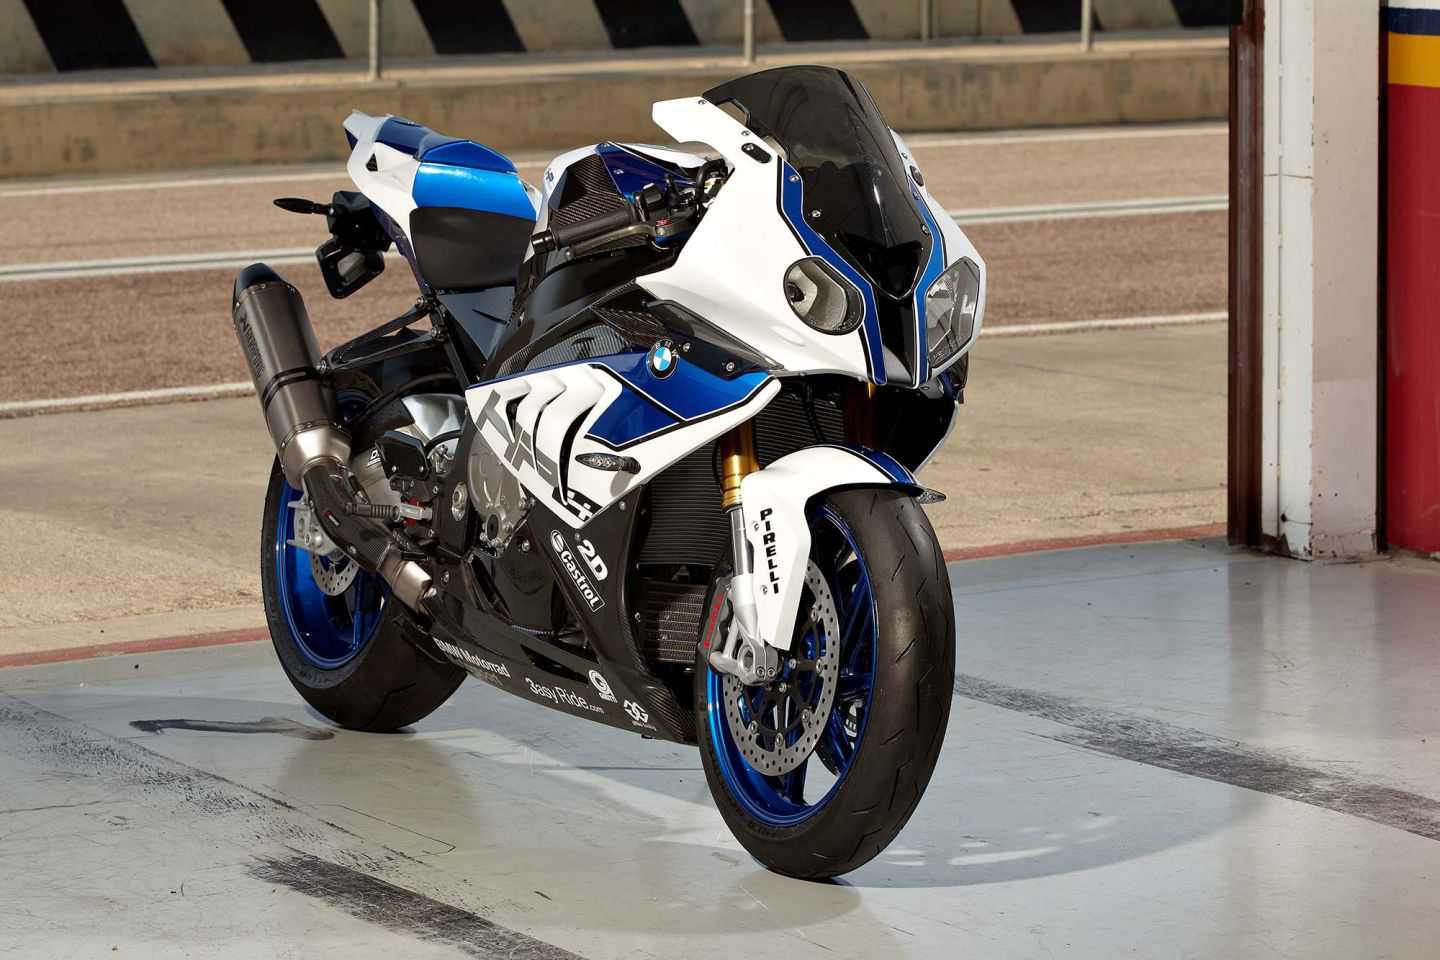 BMW HP4 Becomes Available On December 1st